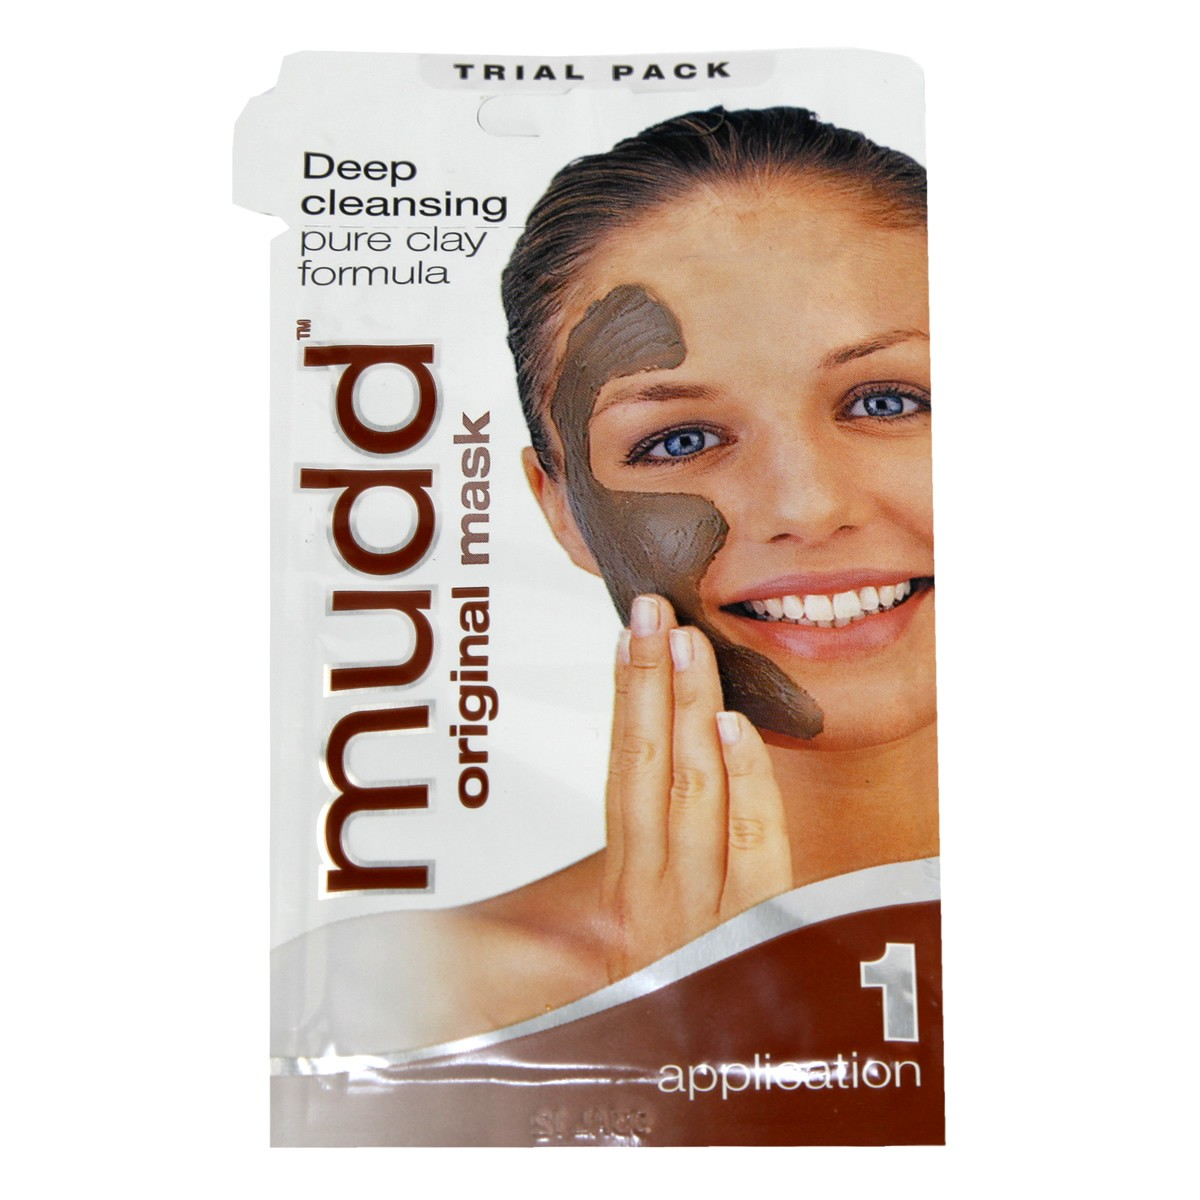 Mudd Original Mask Deep Cleansing Pure Clay Formula -Trial Pack